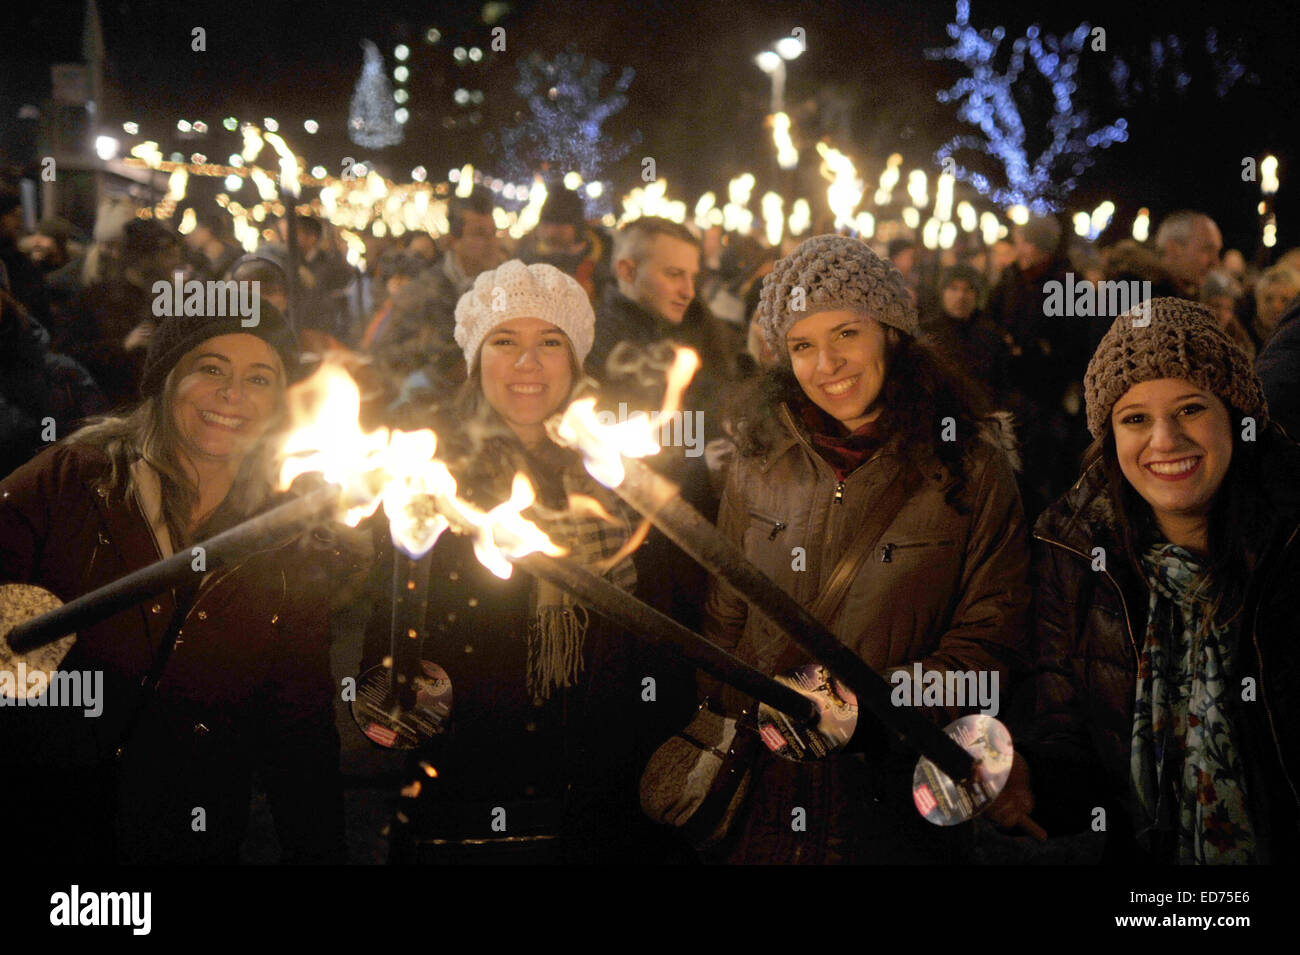 Edinburgh, UK. 30th December 2014. Thousands gather in the center of Edinburgh for the Hogmany Torchlight Procession Stock Photo